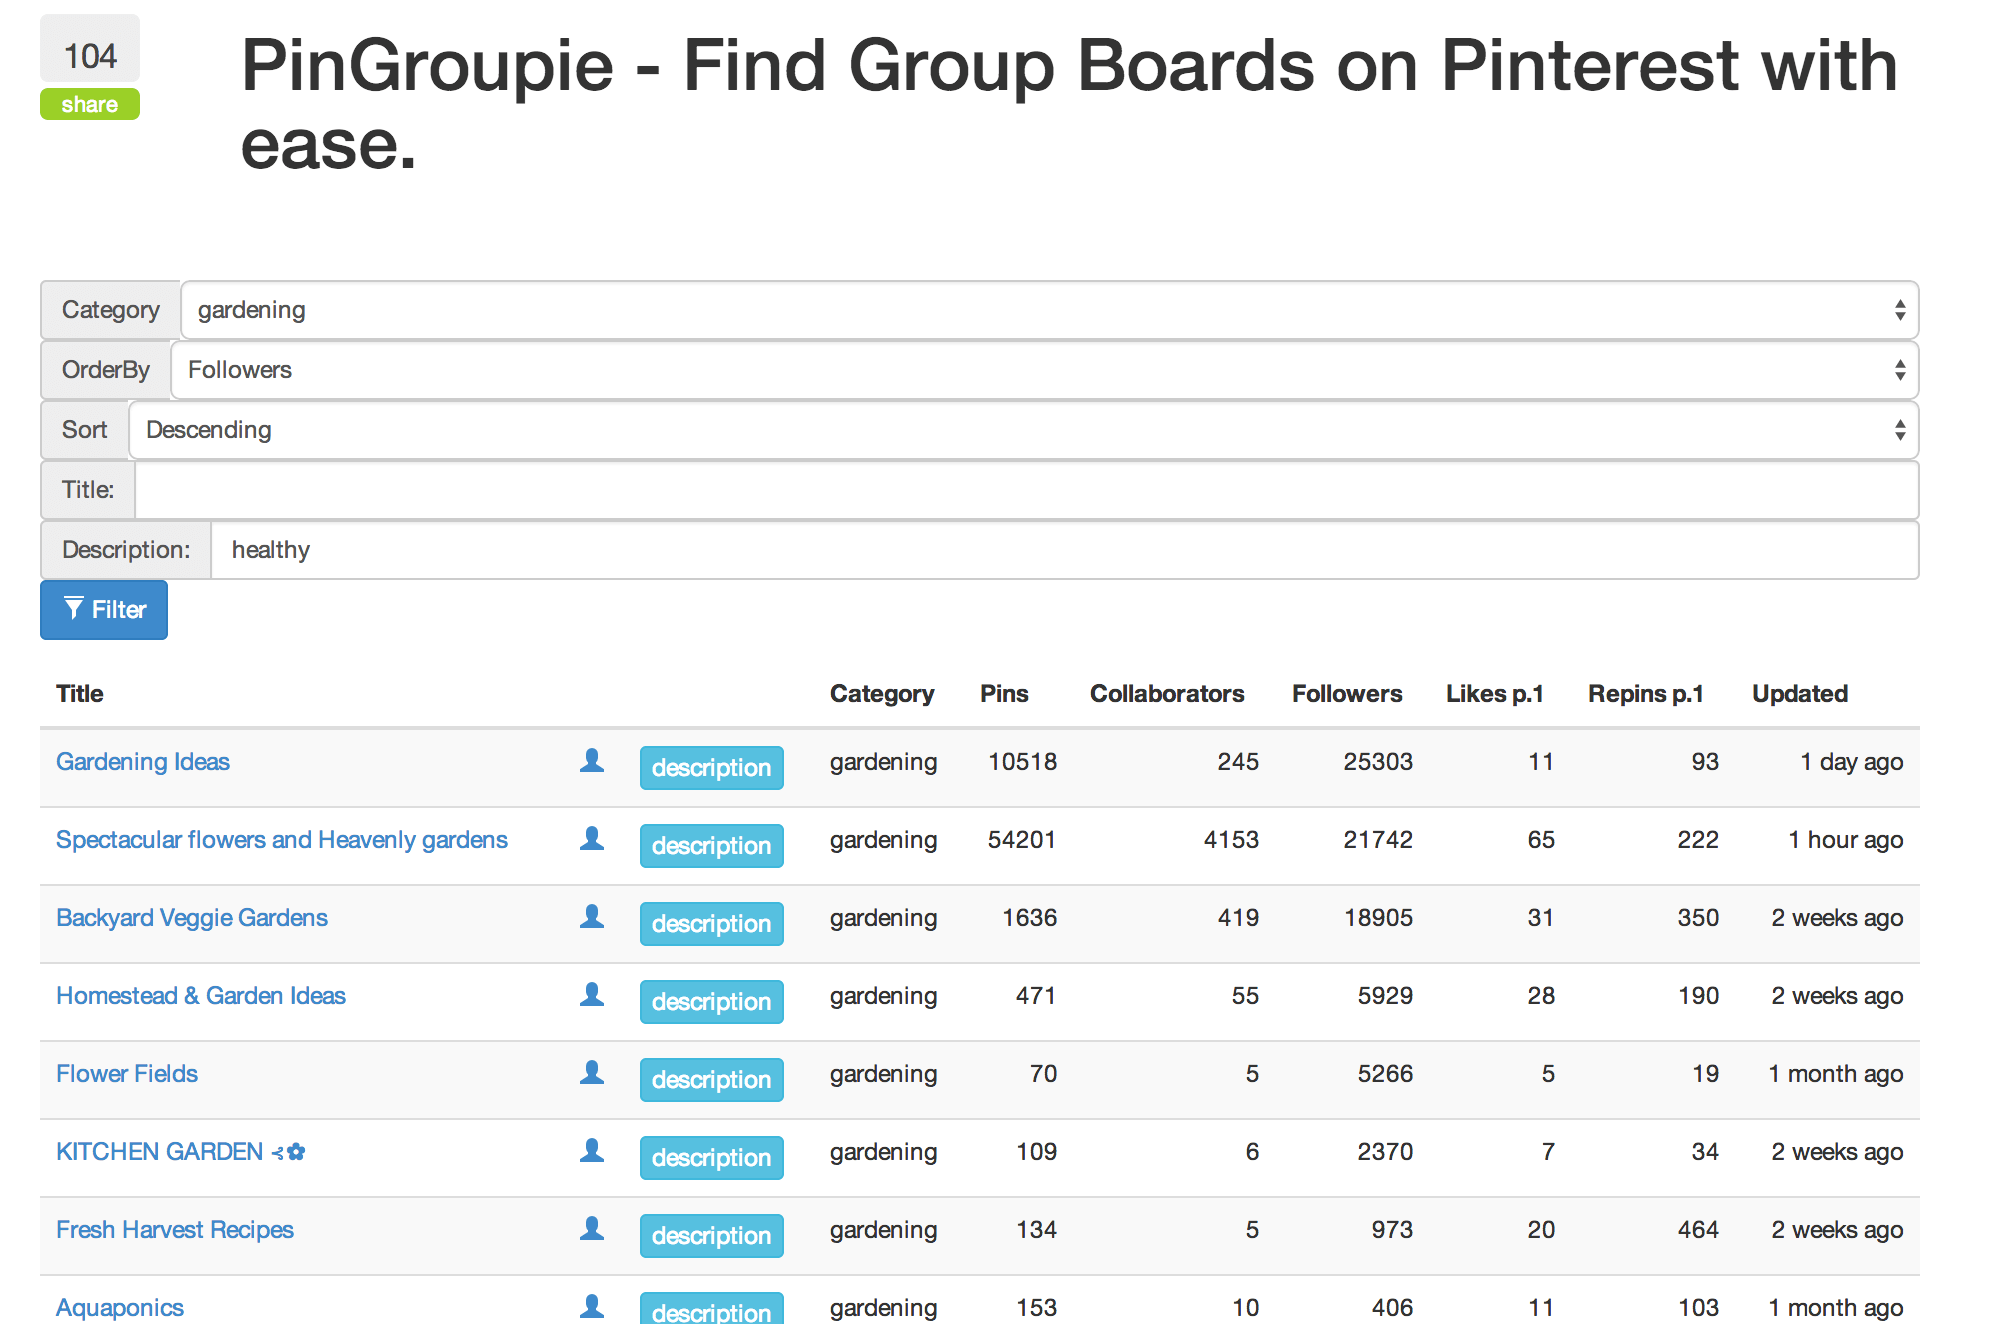 PinGroupie to help bloggers find group boards |5 Ways to be a Successful Pinner